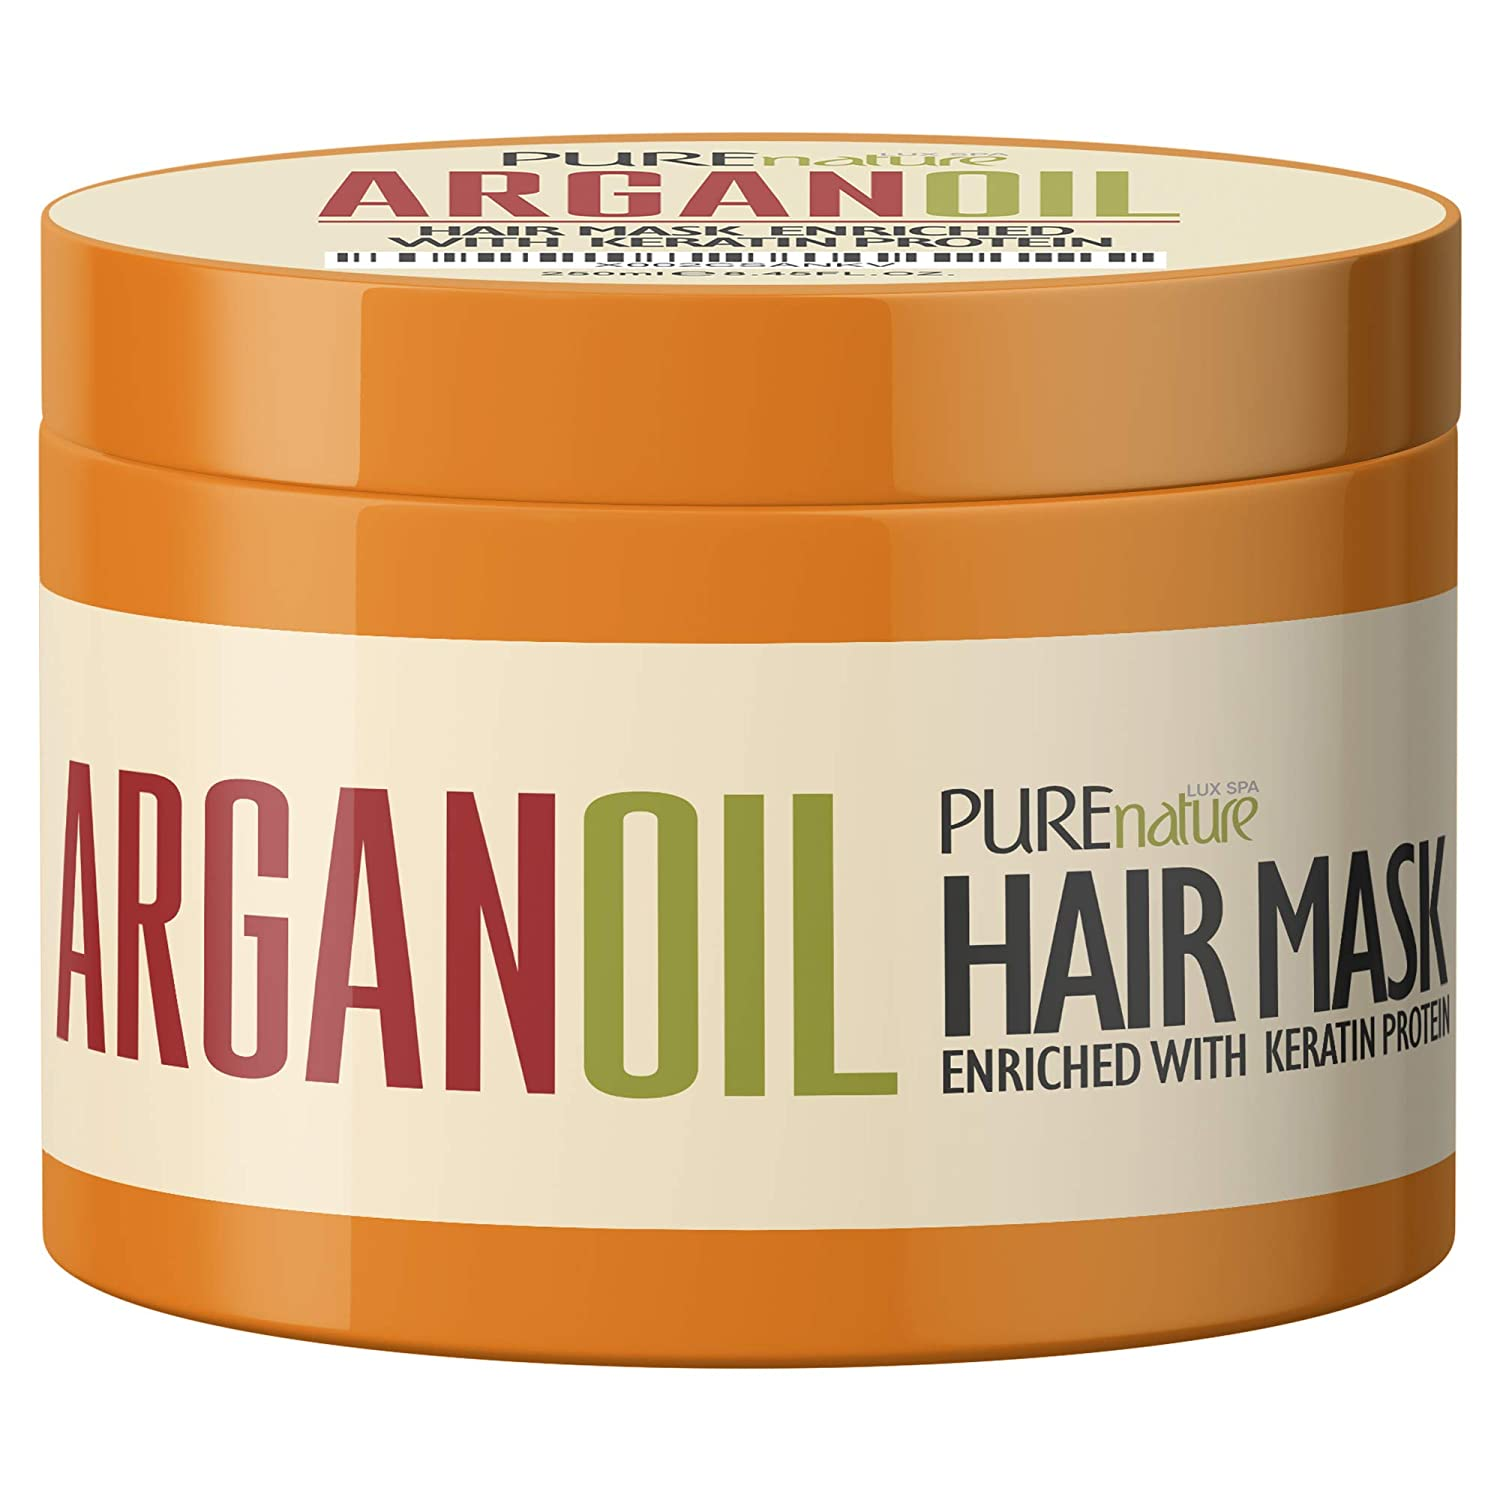 Argan Oil Hair Mask - Deep Conditioner Treatment for Dry Damaged Hair - Moroccan Split End Moisturizer, Natural Hydrating Product